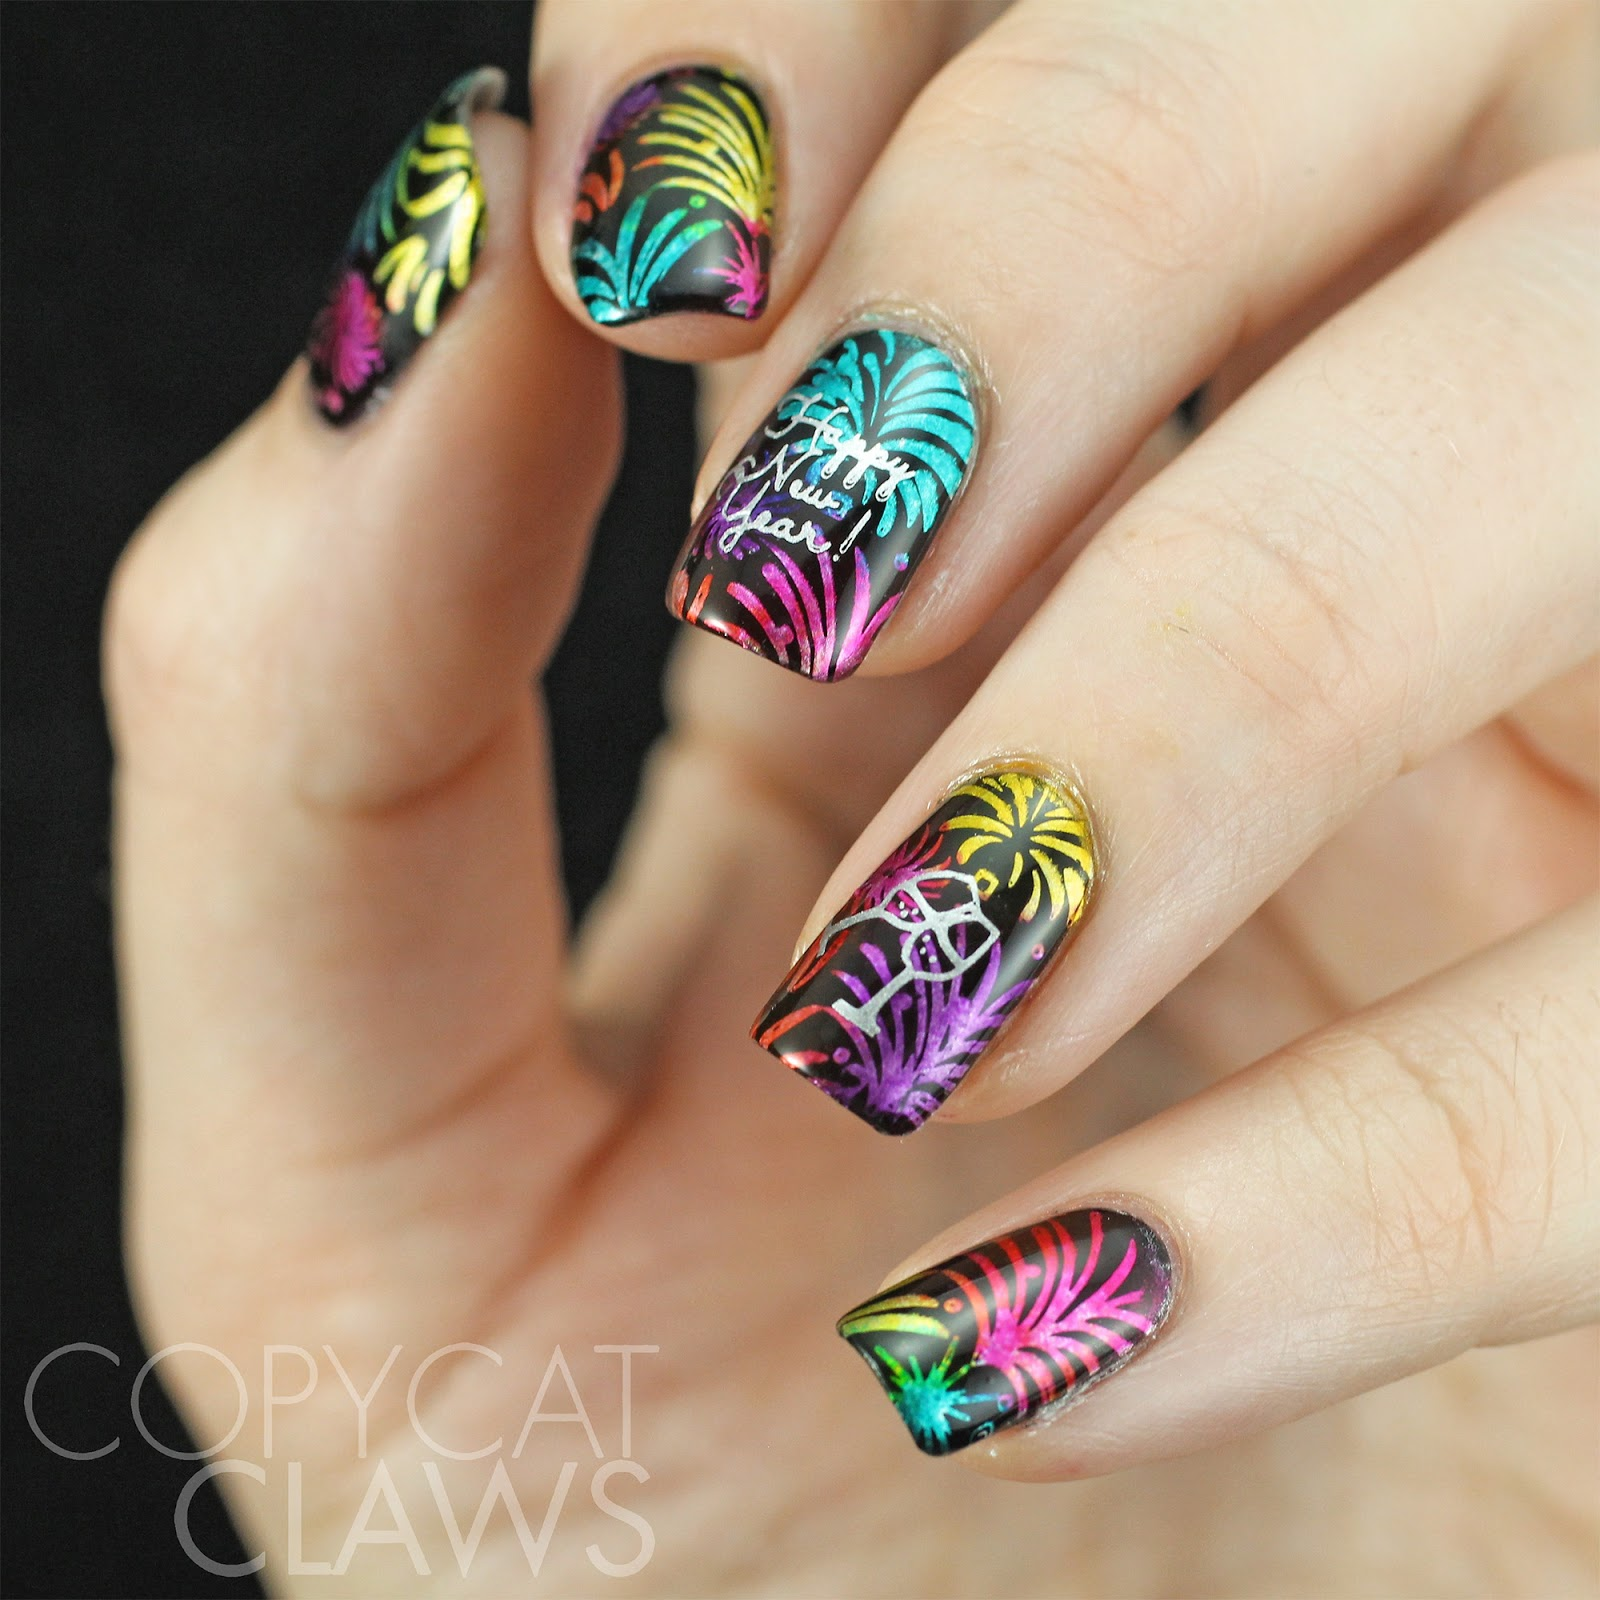 Copycat Claws: 40 Great Nail Art Ideas - New Year